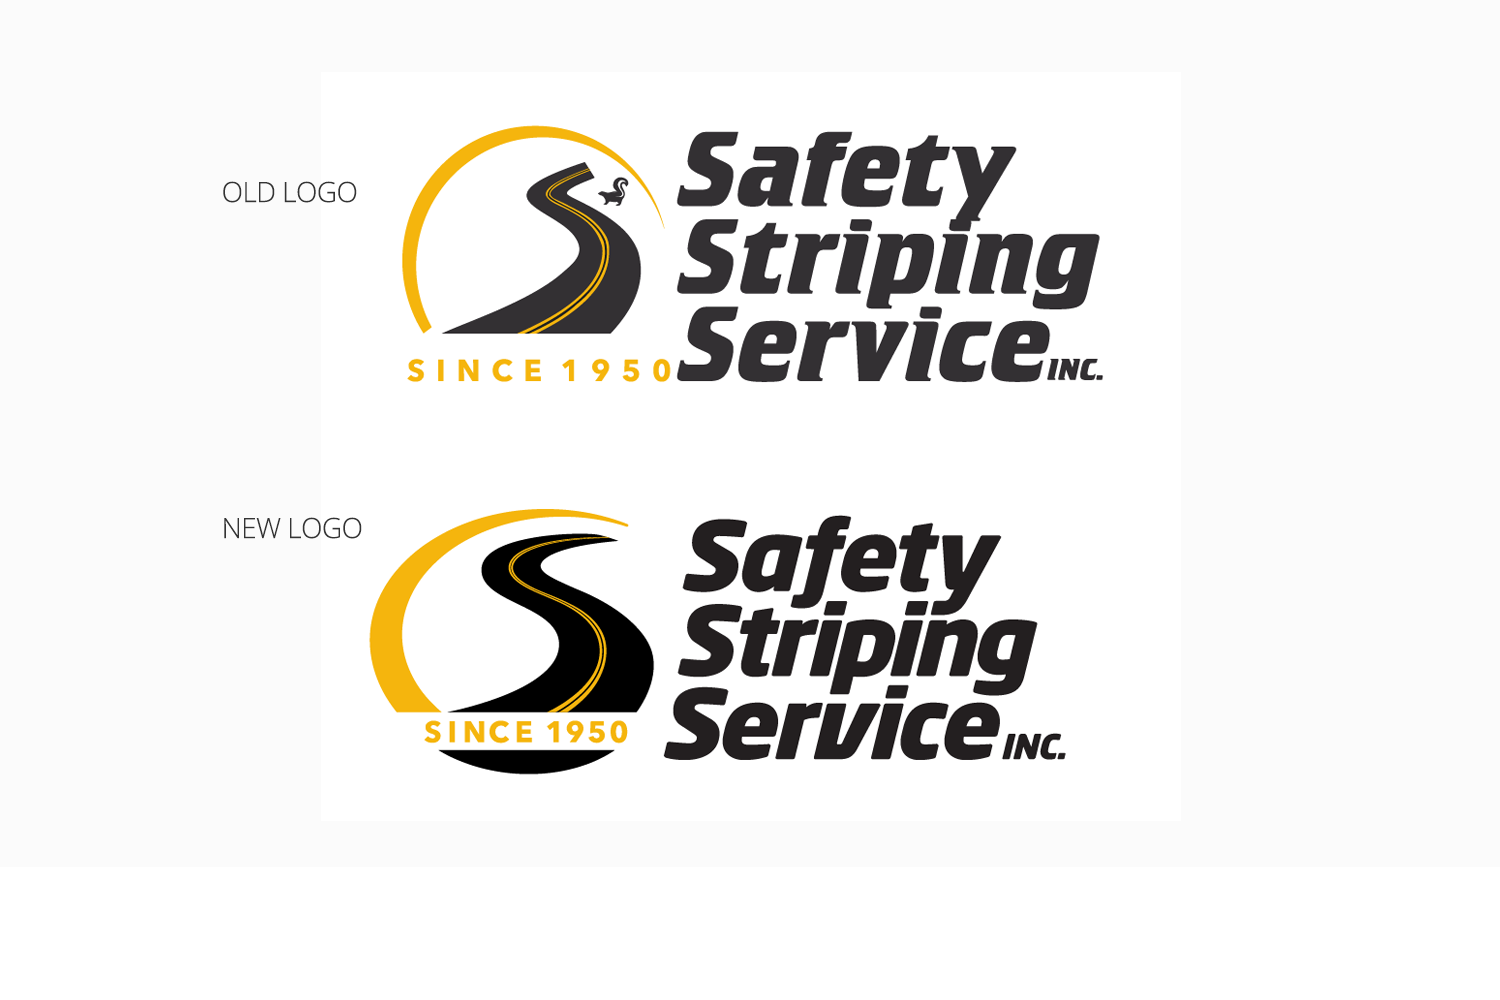 Safety Striping Service comparison of old logo with updated version by DMI_branding update and new website